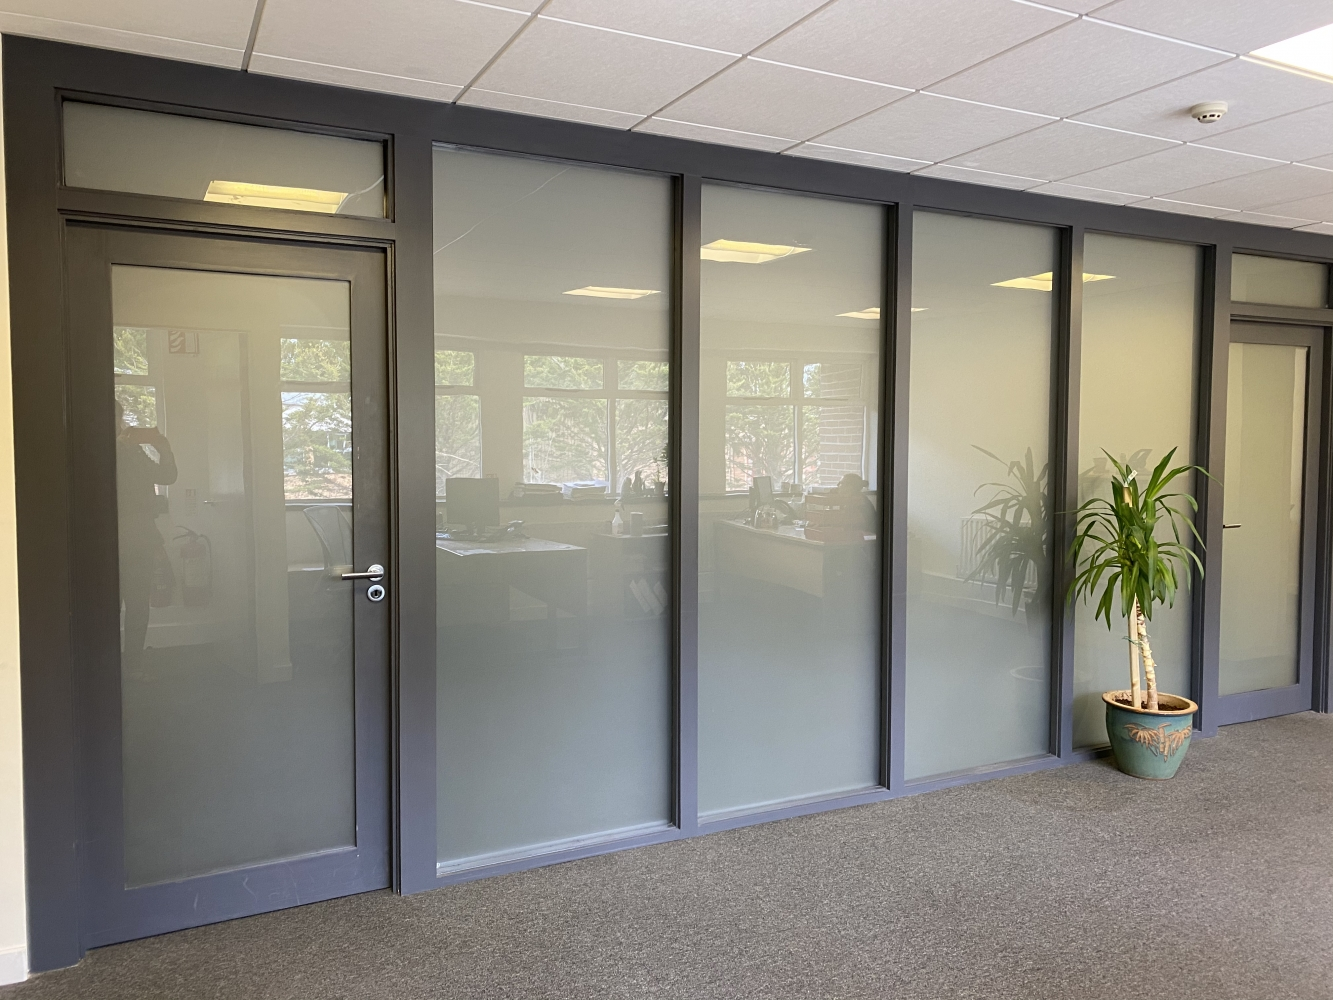 MHF Architects Office Design fitout Wicklow